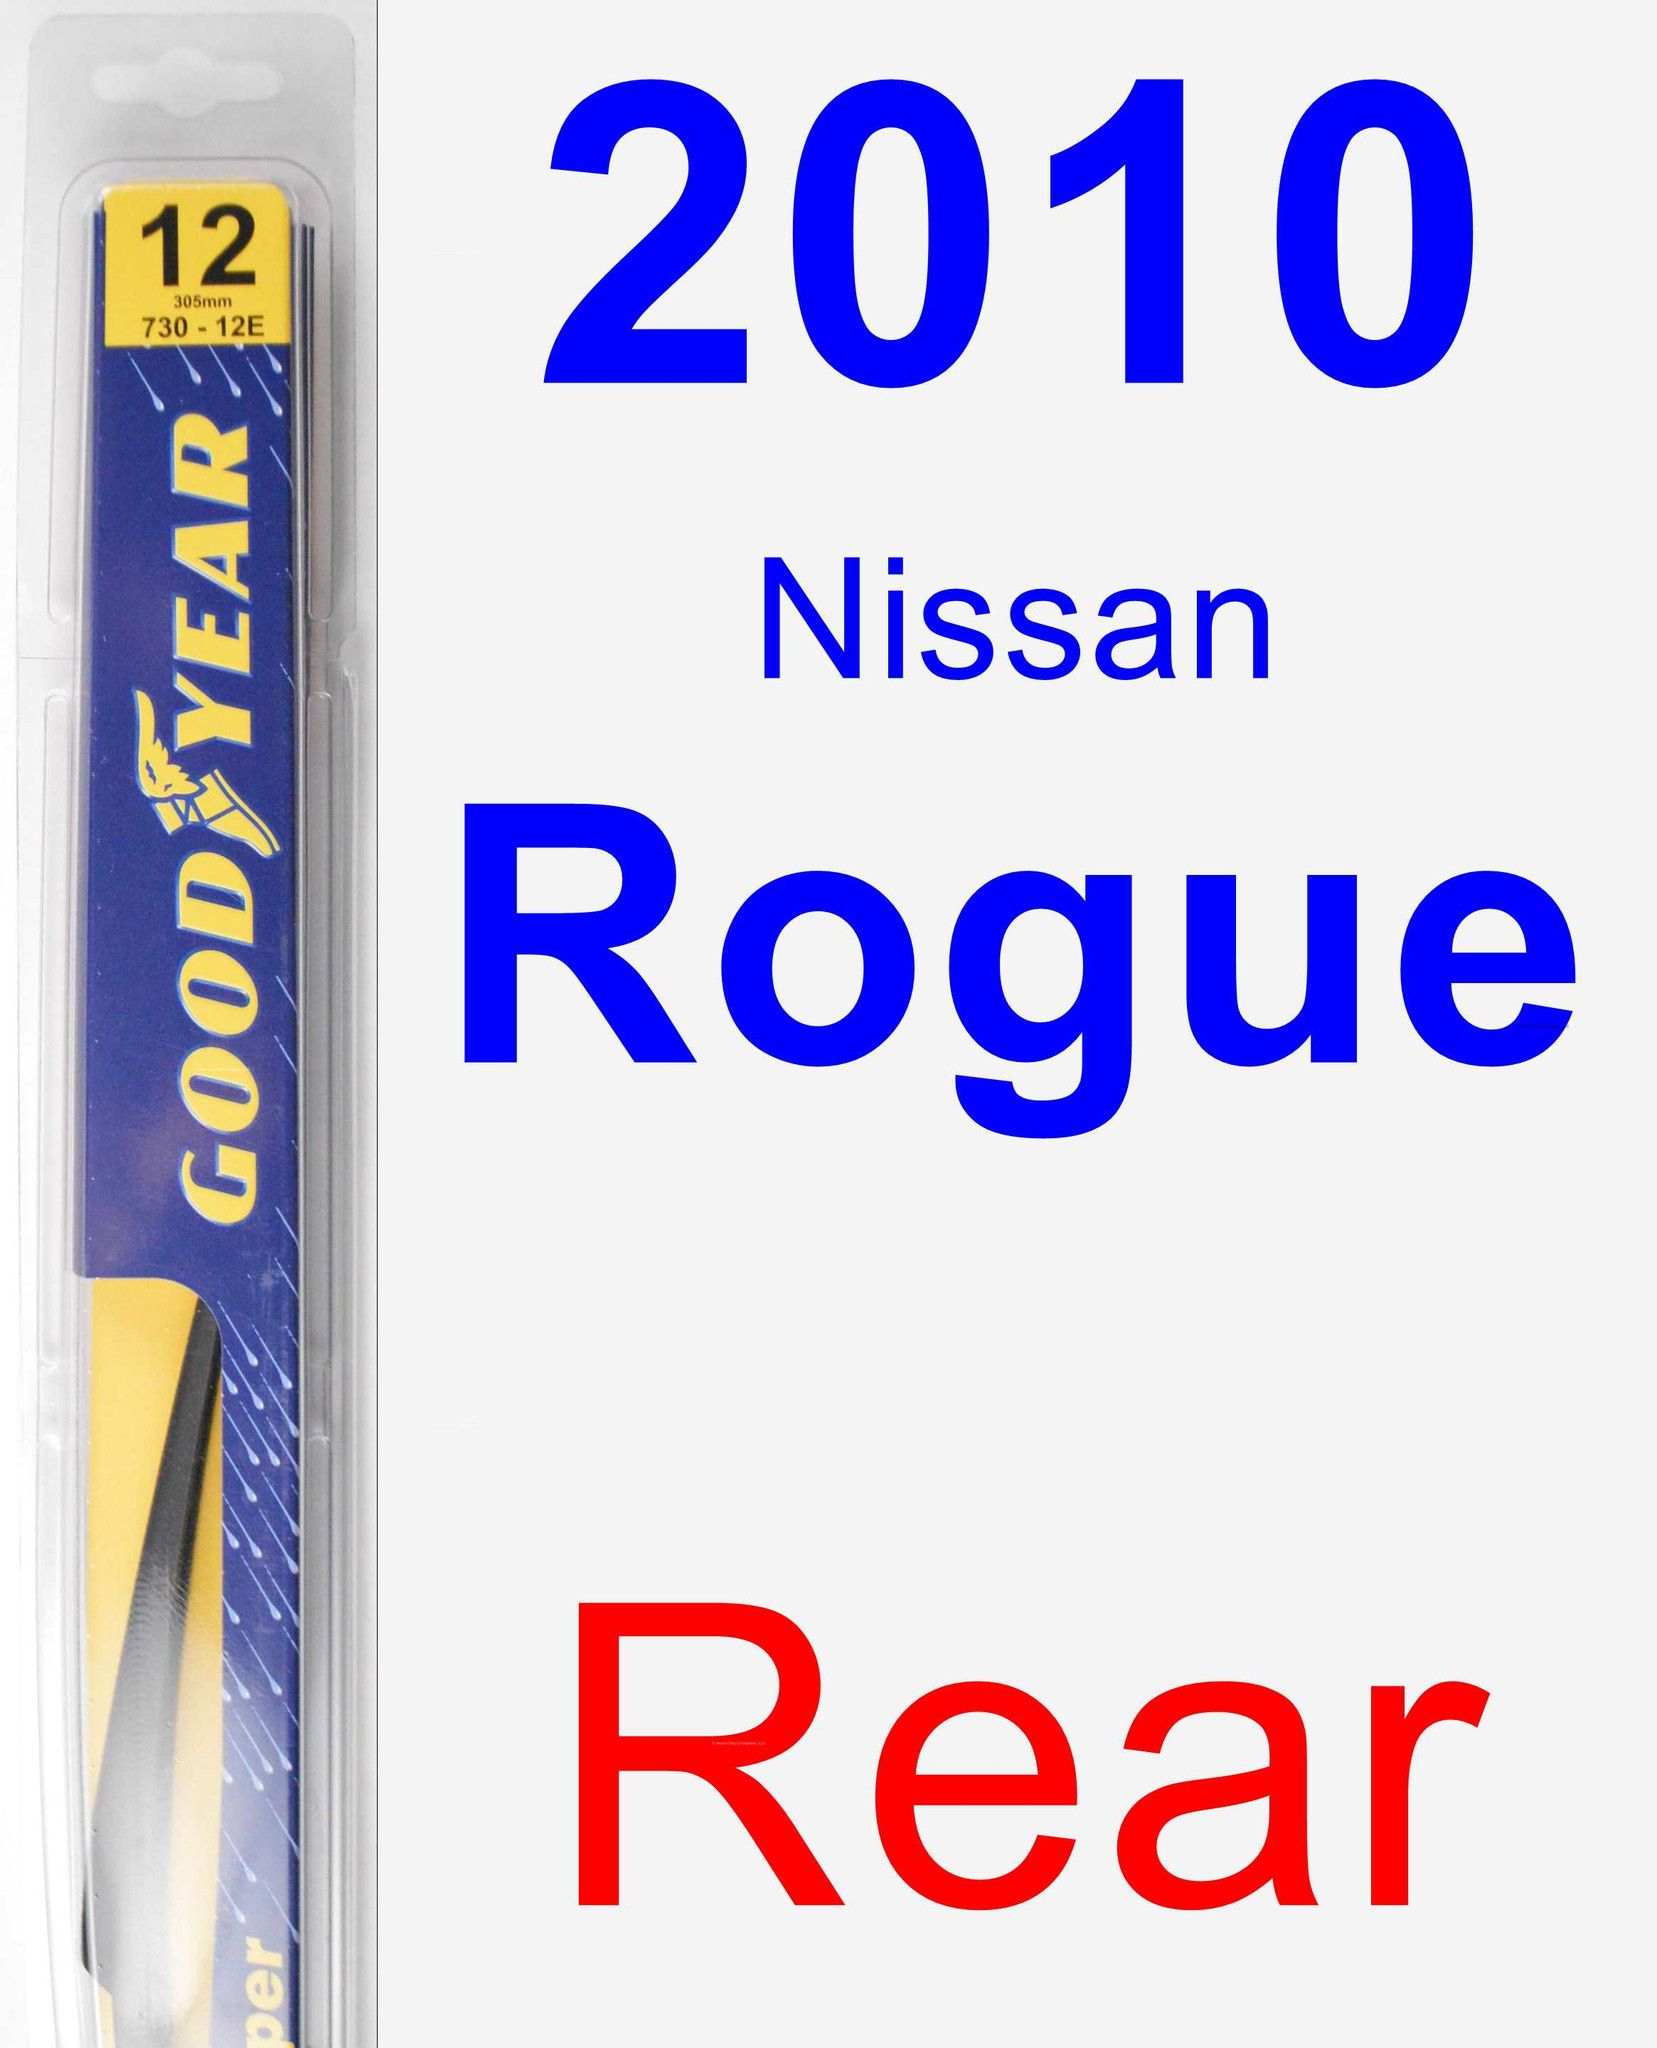 Rear Wiper Blade For 2010 Nissan Rogue Rear Toyota Venza